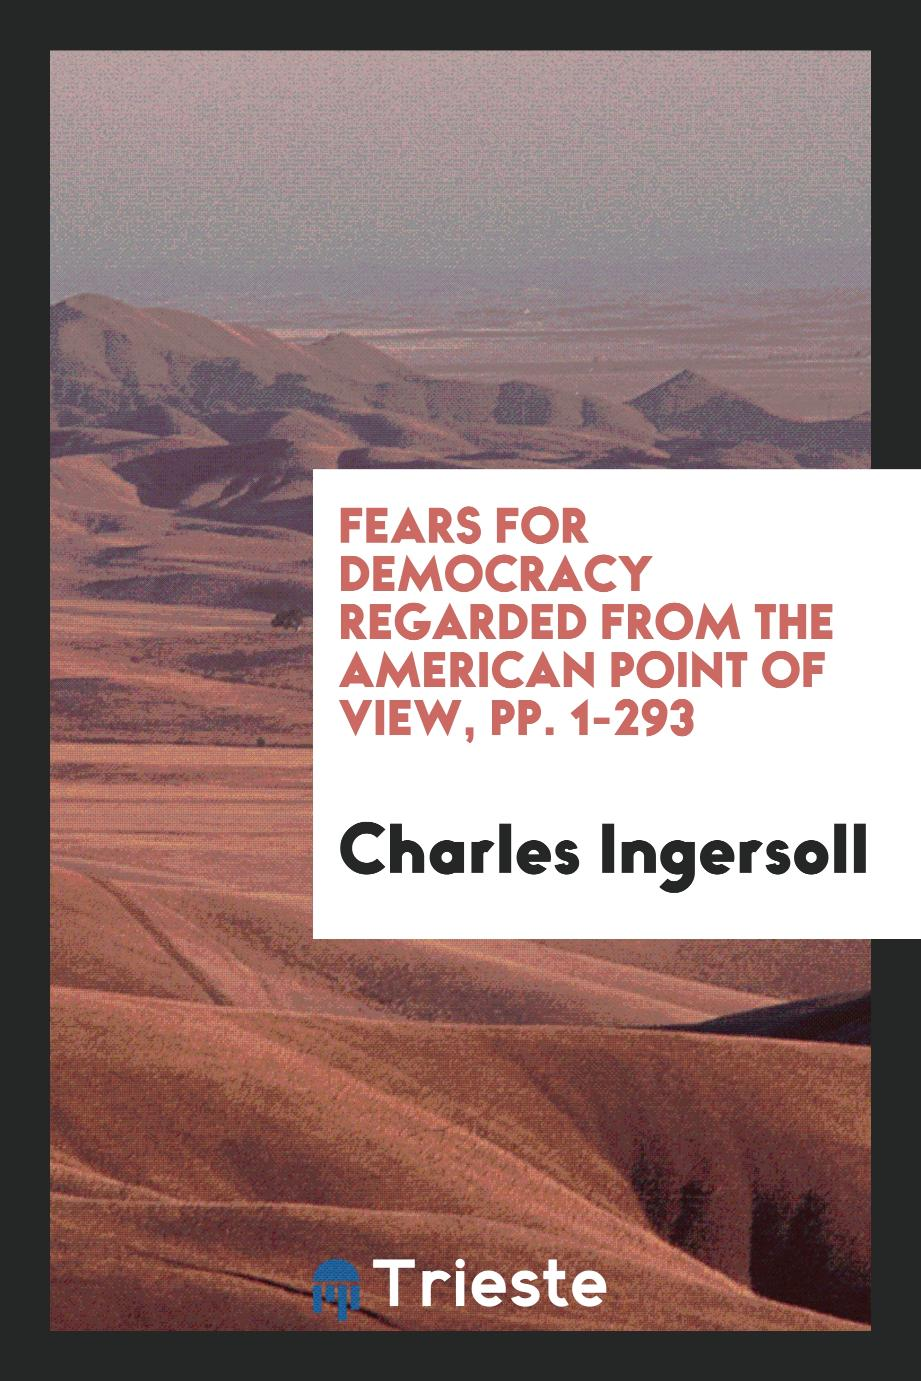 Fears for Democracy Regarded from the American Point of View, pp. 1-293